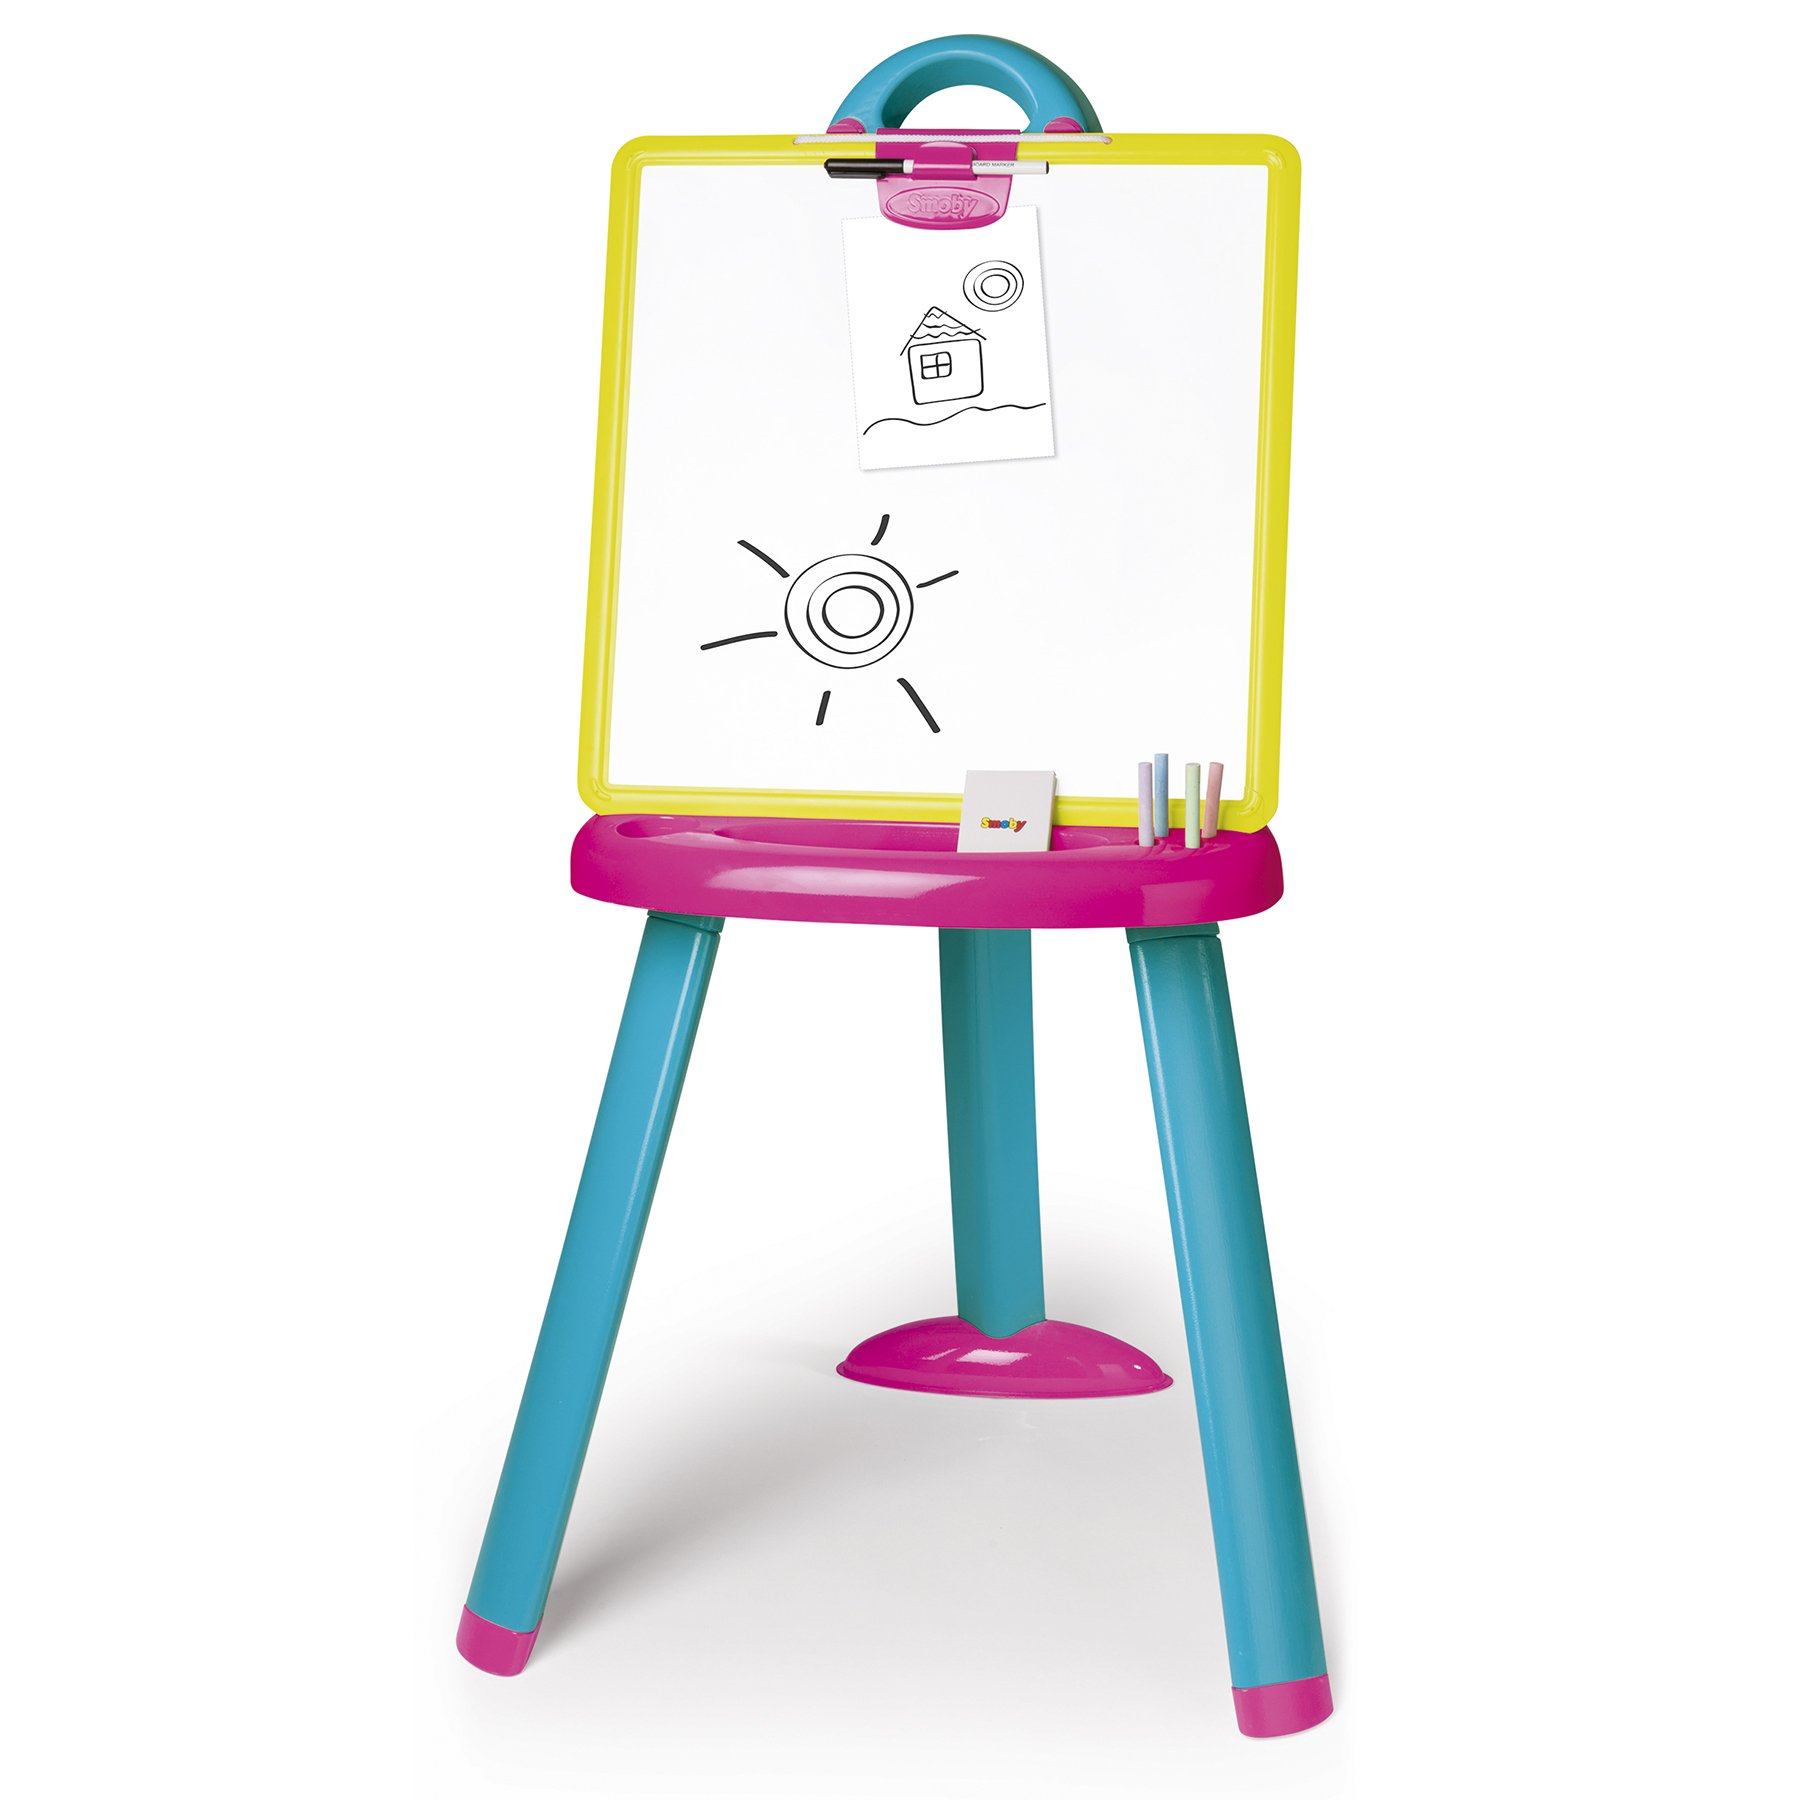 Smoby 410608 Plastic Board Easel, Pink by Smoby